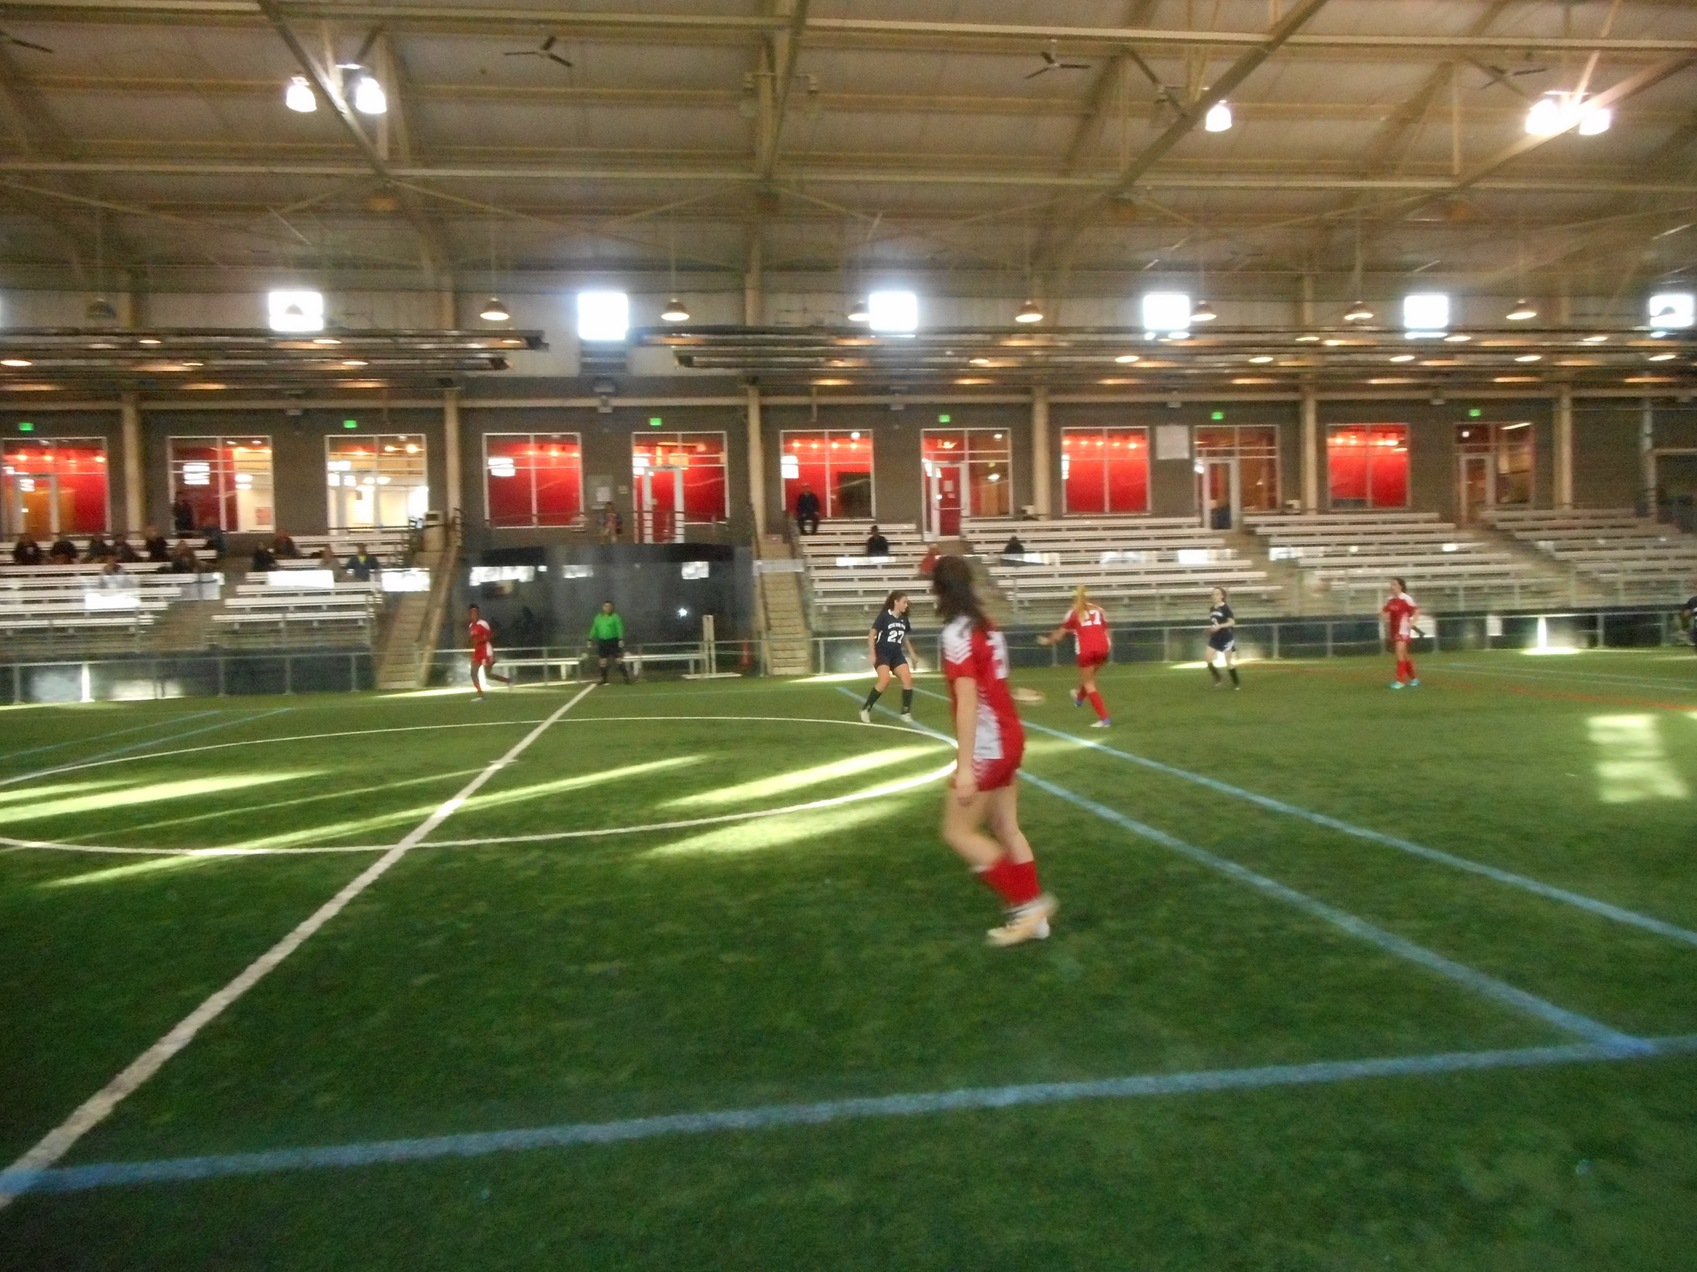 Indoor soccer season getting into full swing